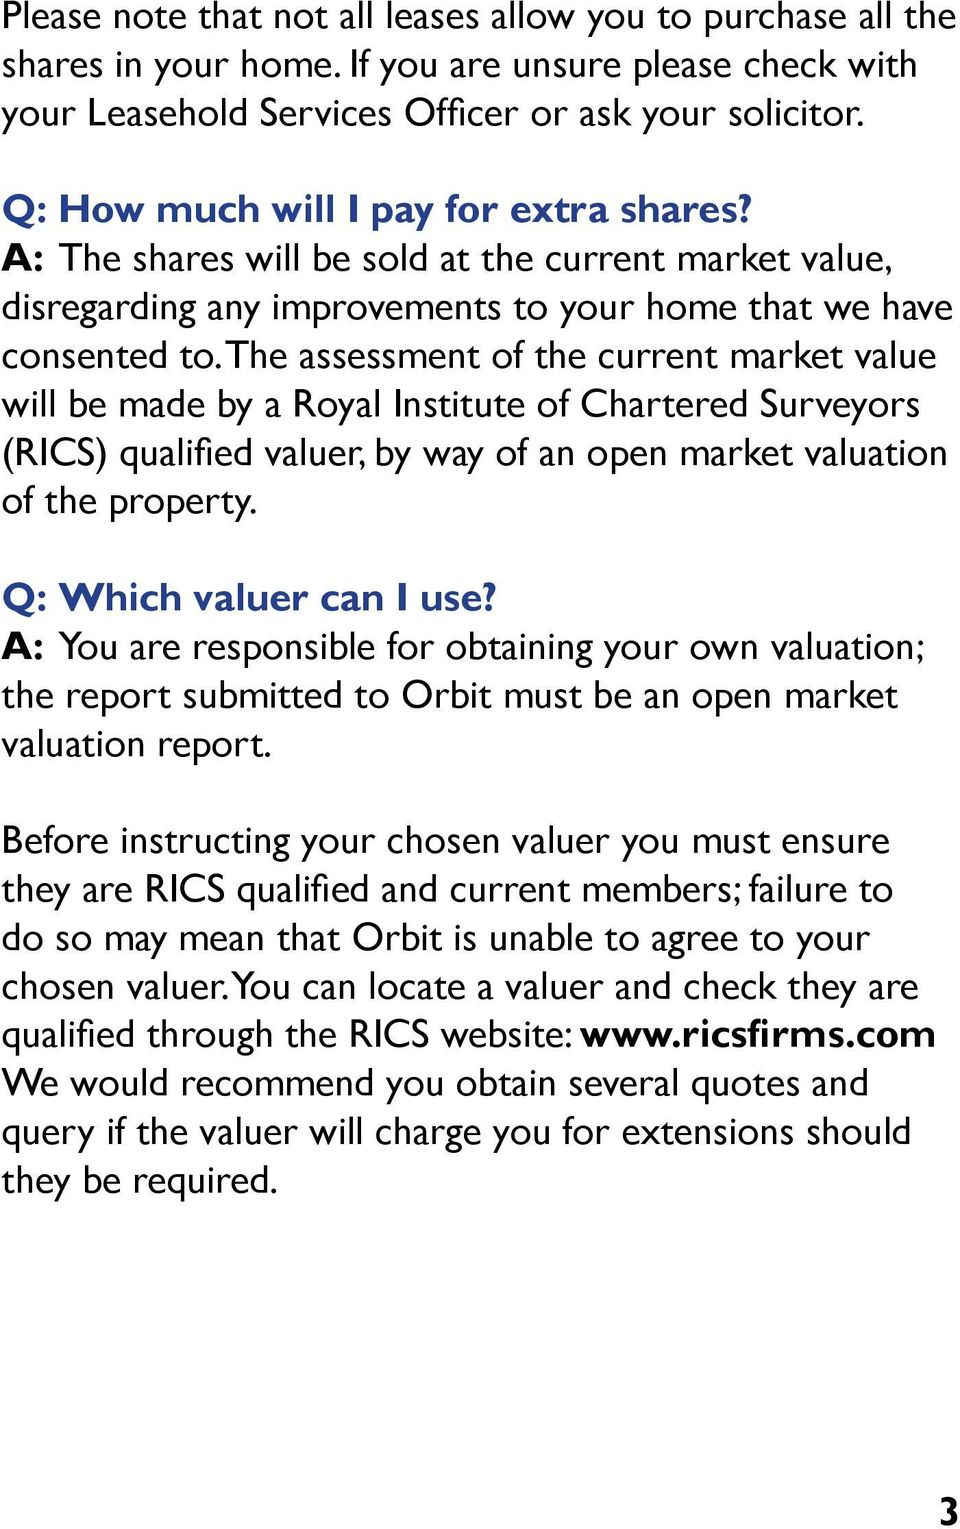 The assessment of the current market value will be made by a Royal Institute of Chartered Surveyors (RICS) qualified valuer, by way of an open market valuation of the property.